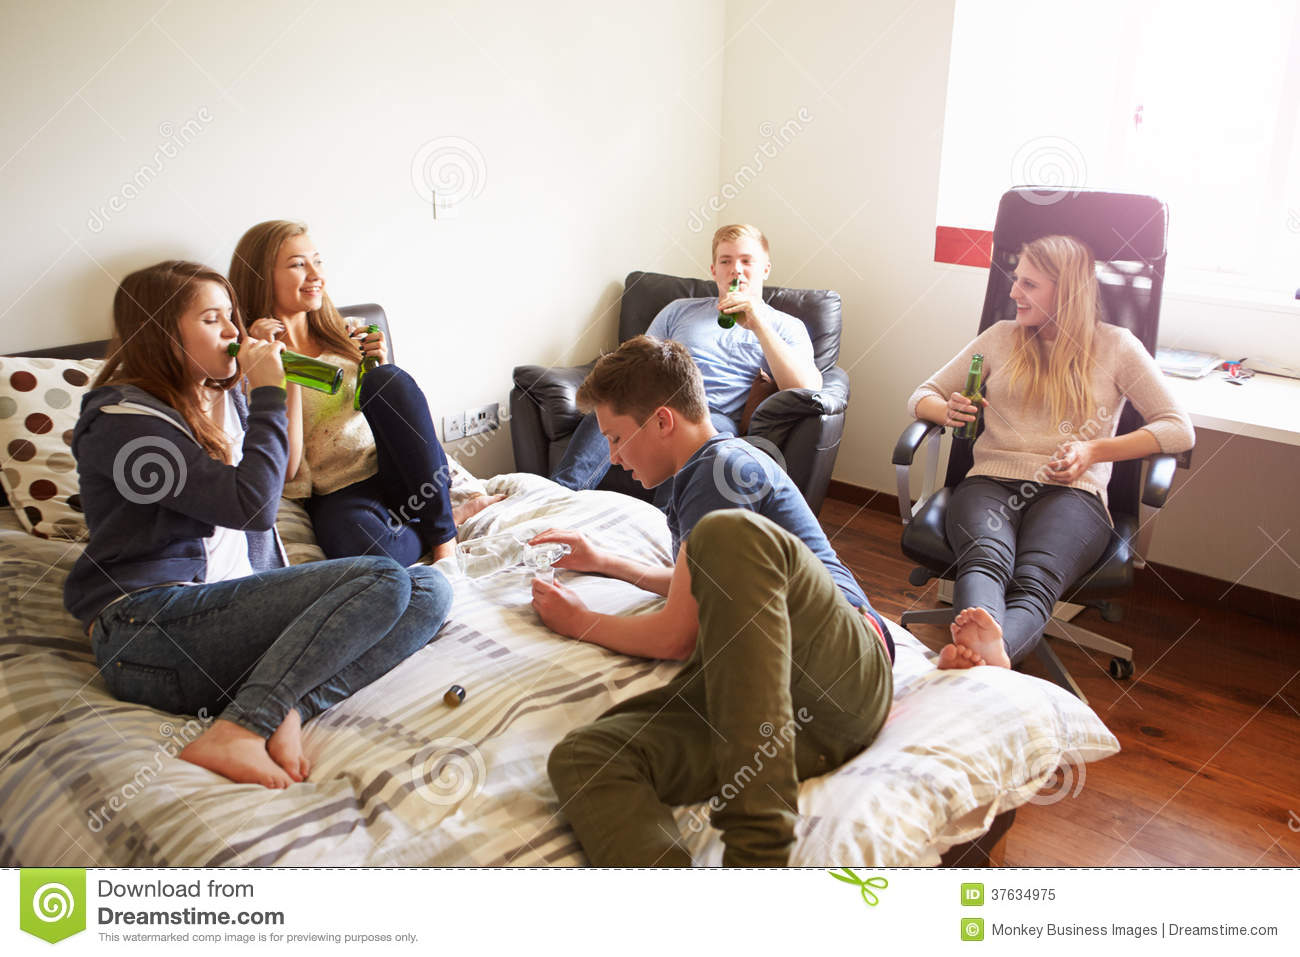 Female Teenagers Drinking Stock - In Of Horizontal Bedroom Image 37634975 Group Alcohol